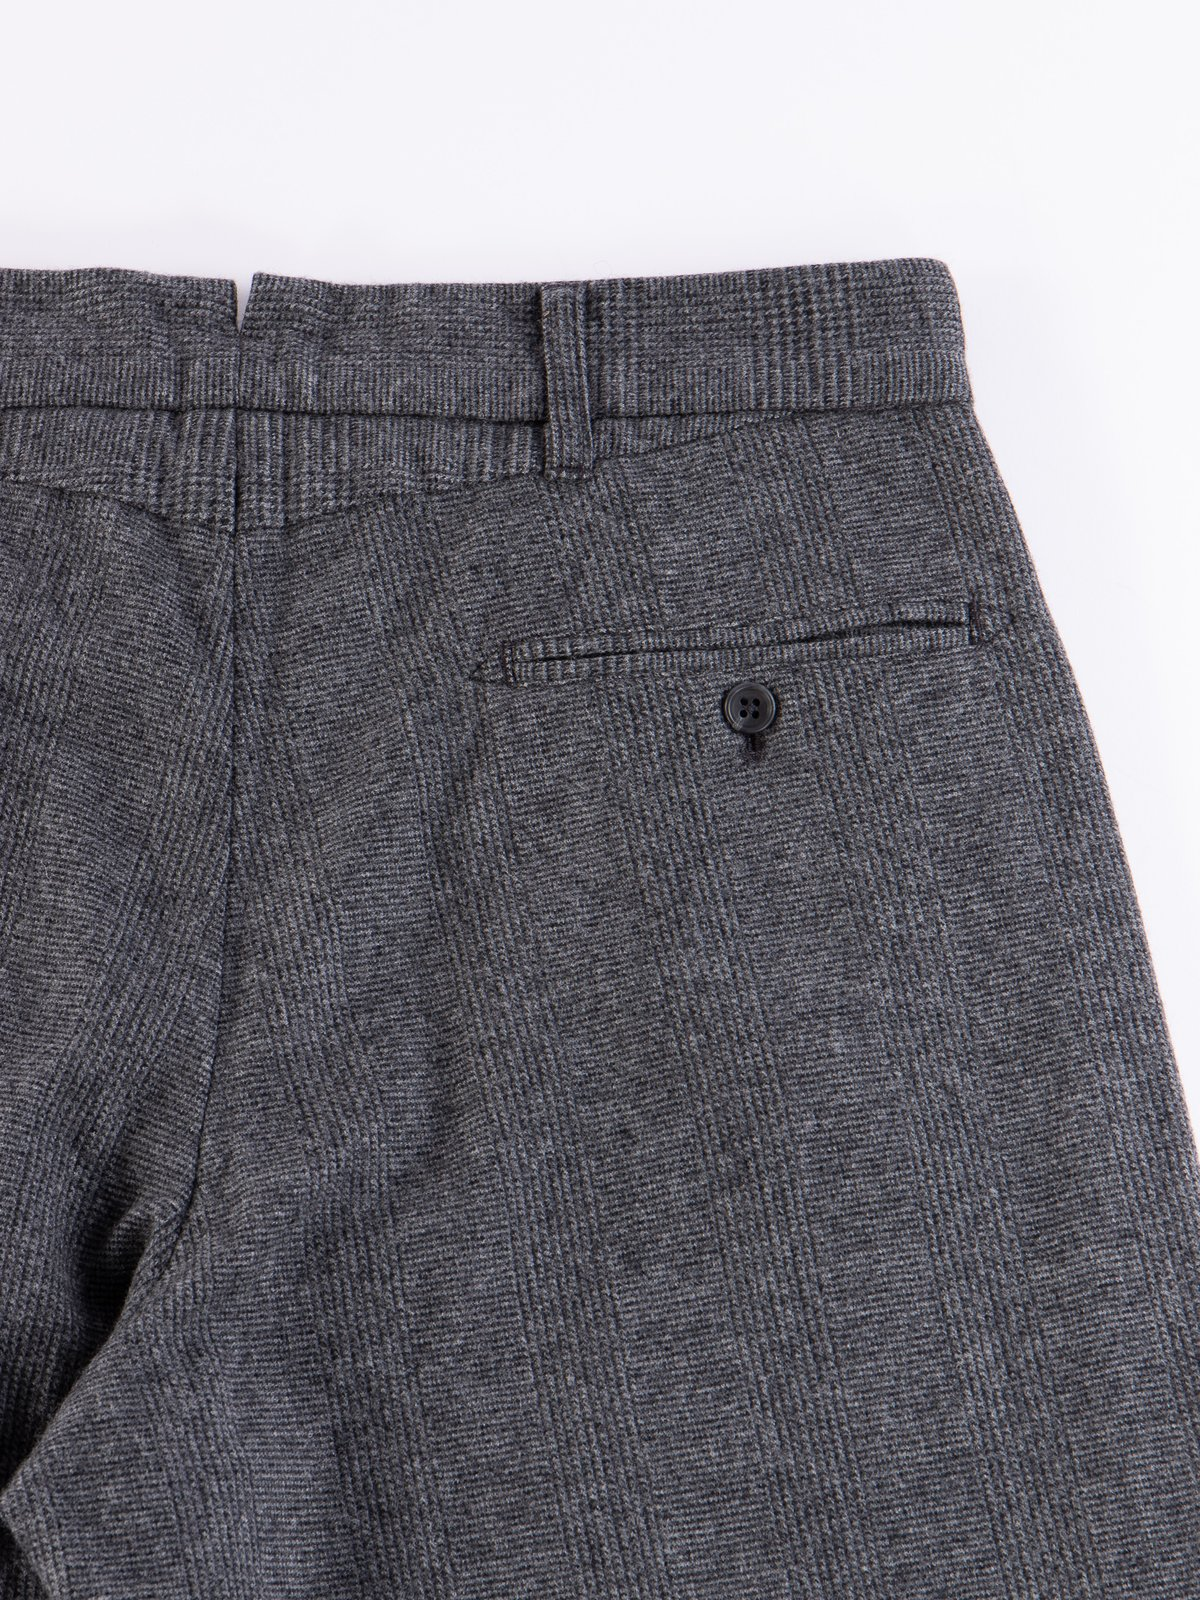 Grey Wool Glen Plaid Stripe Andover Pant - Image 6